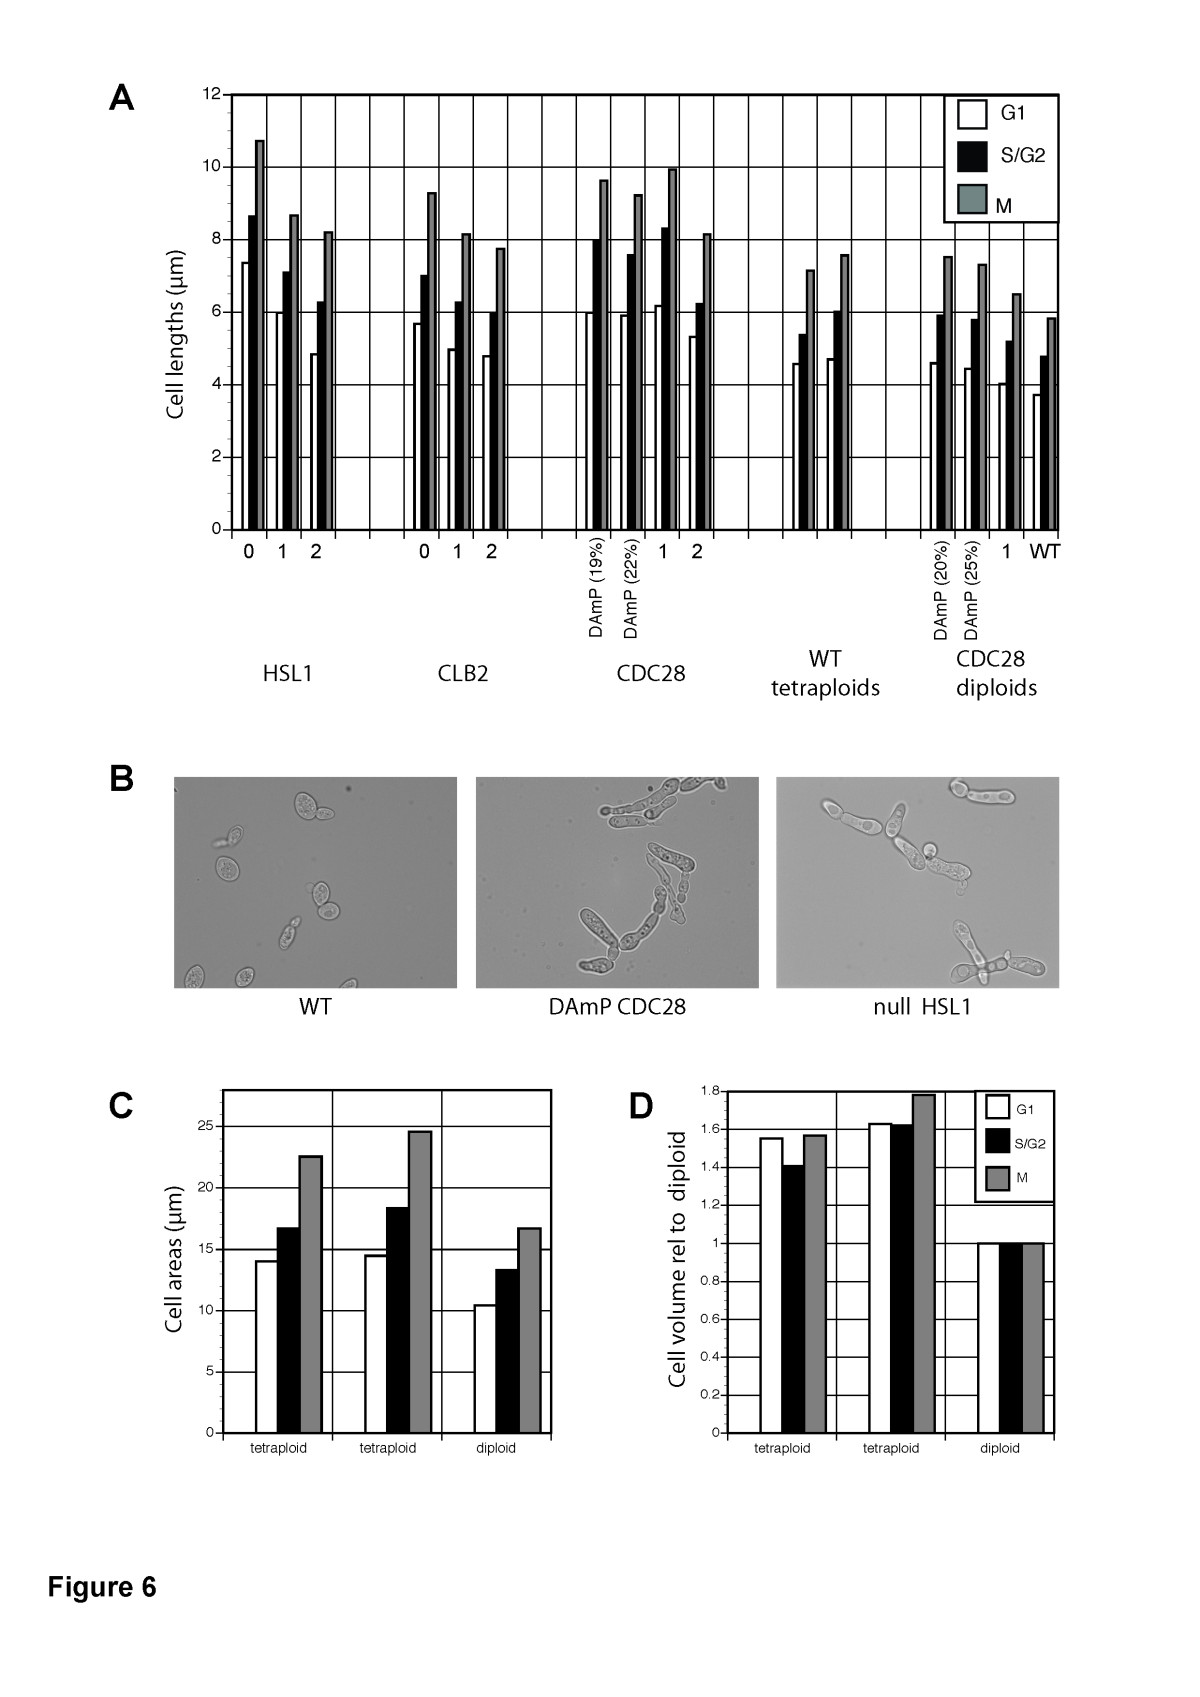 Control analysis of the eukaryotic cell cycle using gene copy number